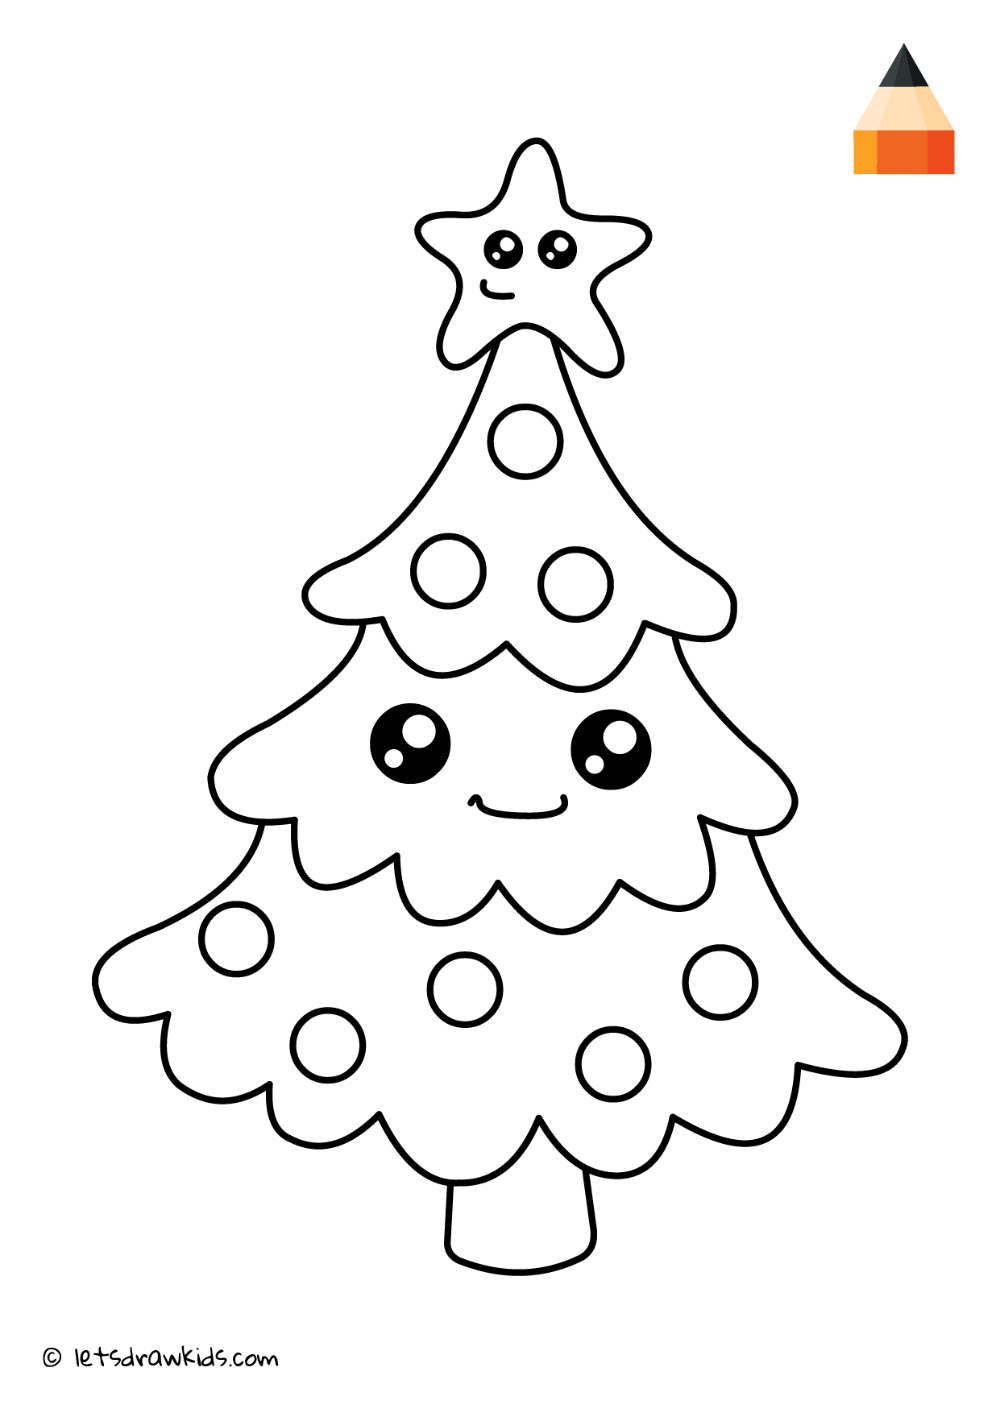 1241x1754 Kids Christmas Tree Drawing In 2020 Christmas Tree Drawing Drawings Christmas Trees For Kids